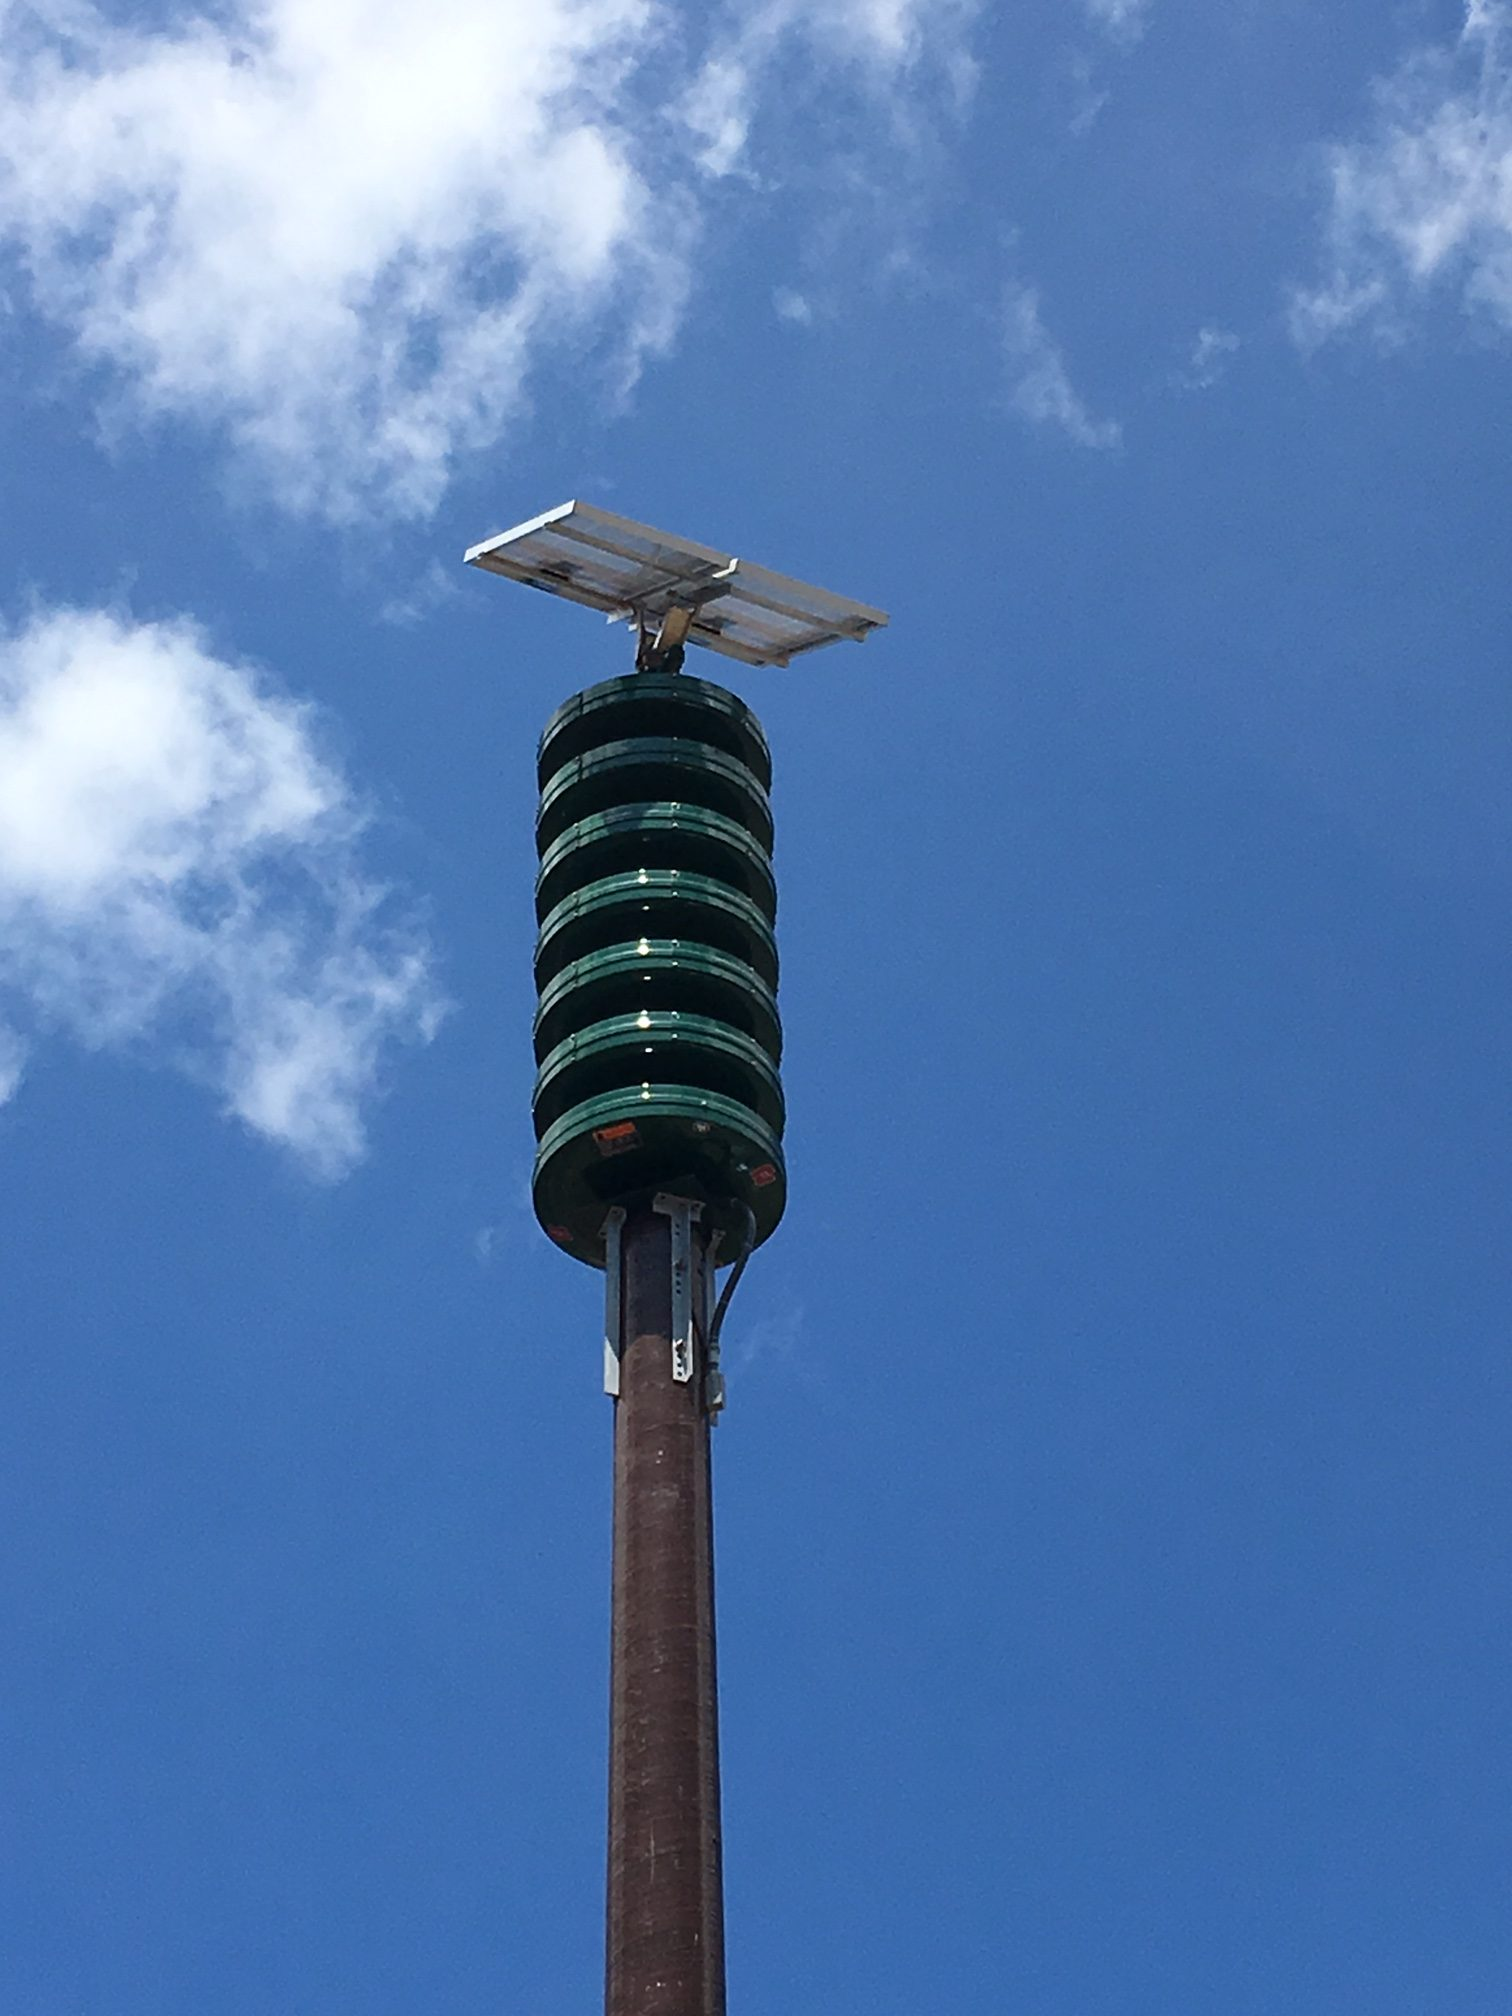 Monthly Siren and Emergency Alert System Test, June 3